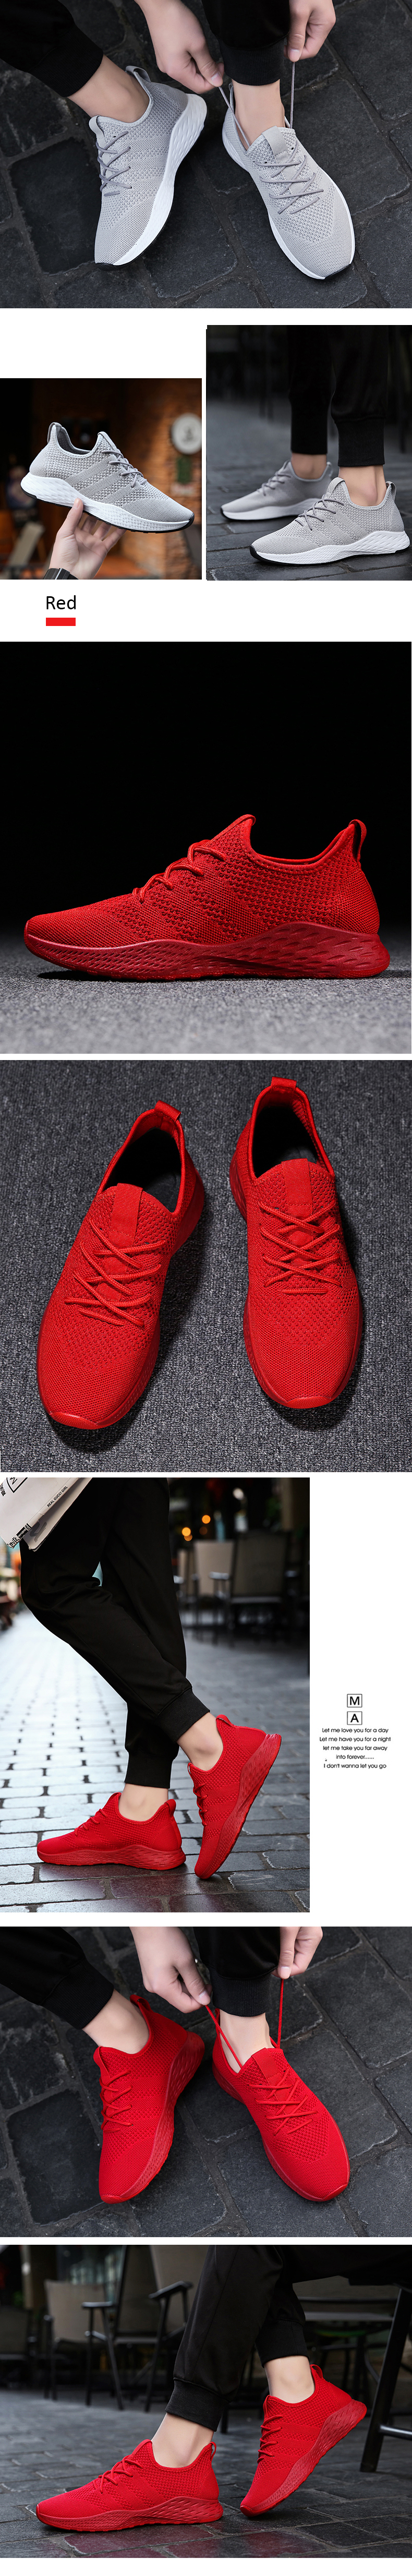 HTB10nyTX5LxK1Rjy0Ffq6zYdVXae - Men Casual Shoes Men Sneakers Brand Men Shoes Male Mesh Flats Loafers Slip On Big Size Breathable Spring Autumn Winter Xammep